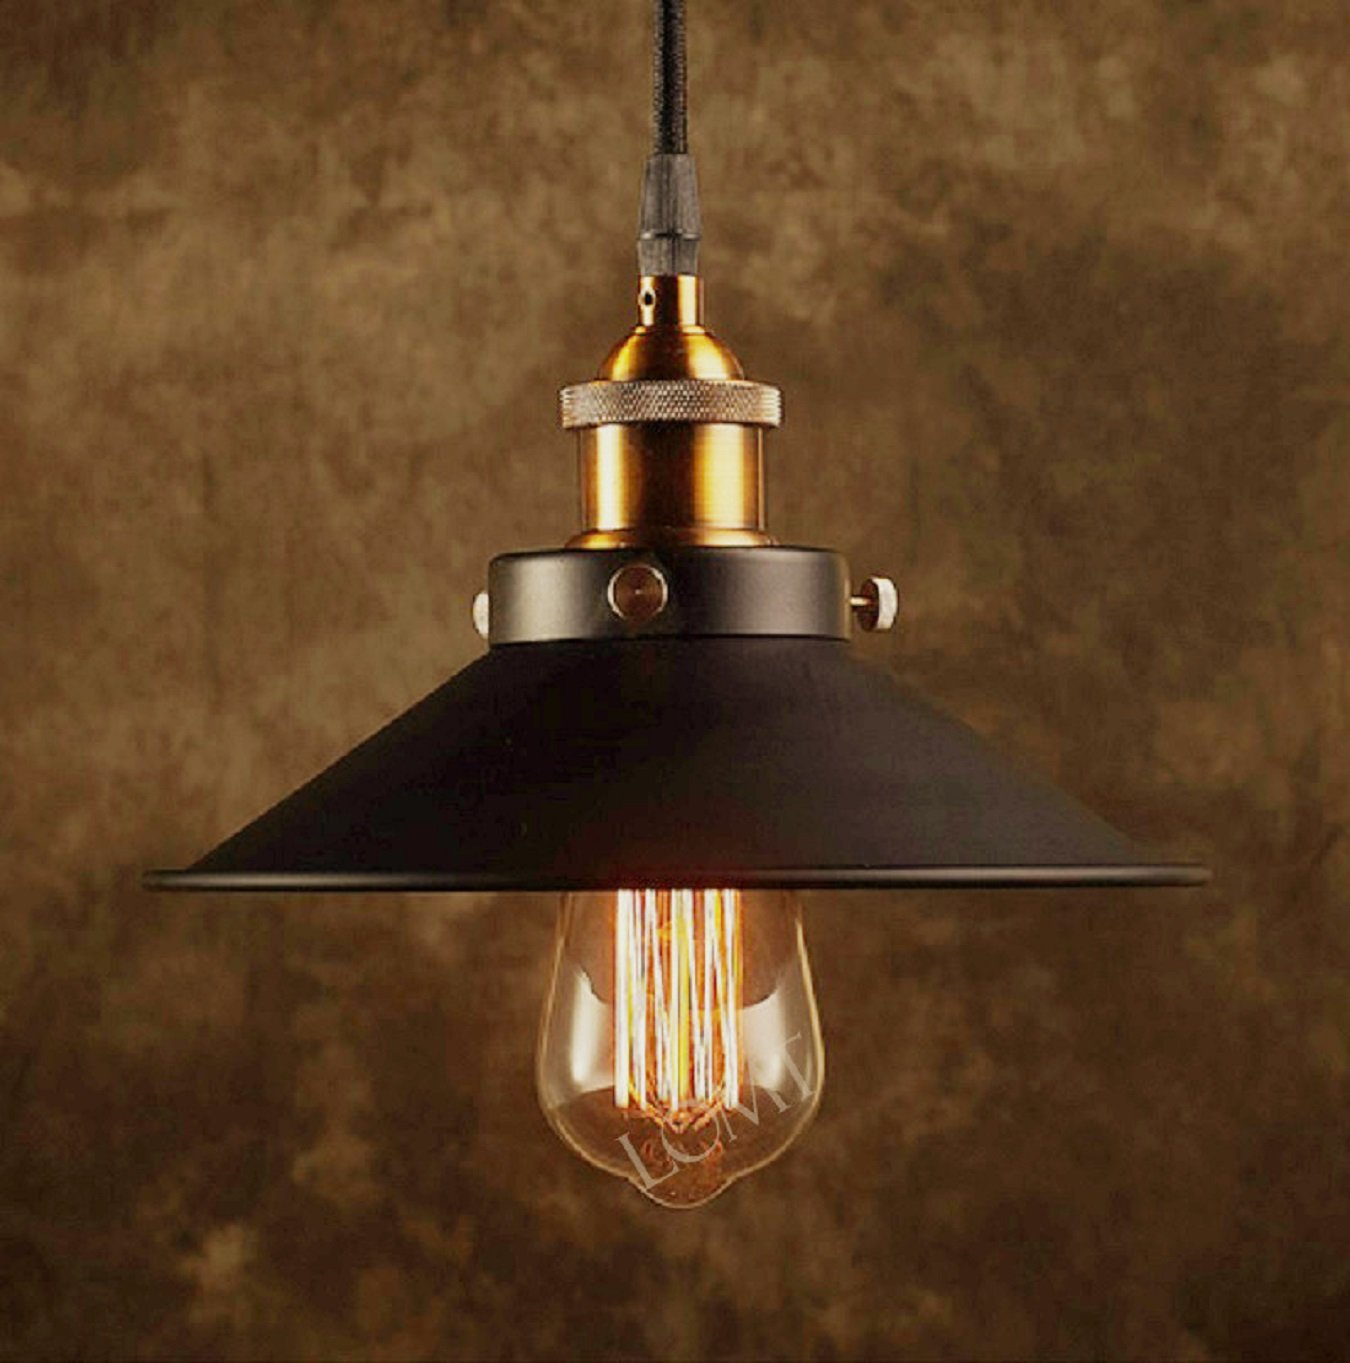 Modern black metal shade ceiling light with a bronze vintage lamp modern black metal shade ceiling light with a bronze vintage lamp holder a unique industrial pendant light create the perfect atmosphere for bar aloadofball